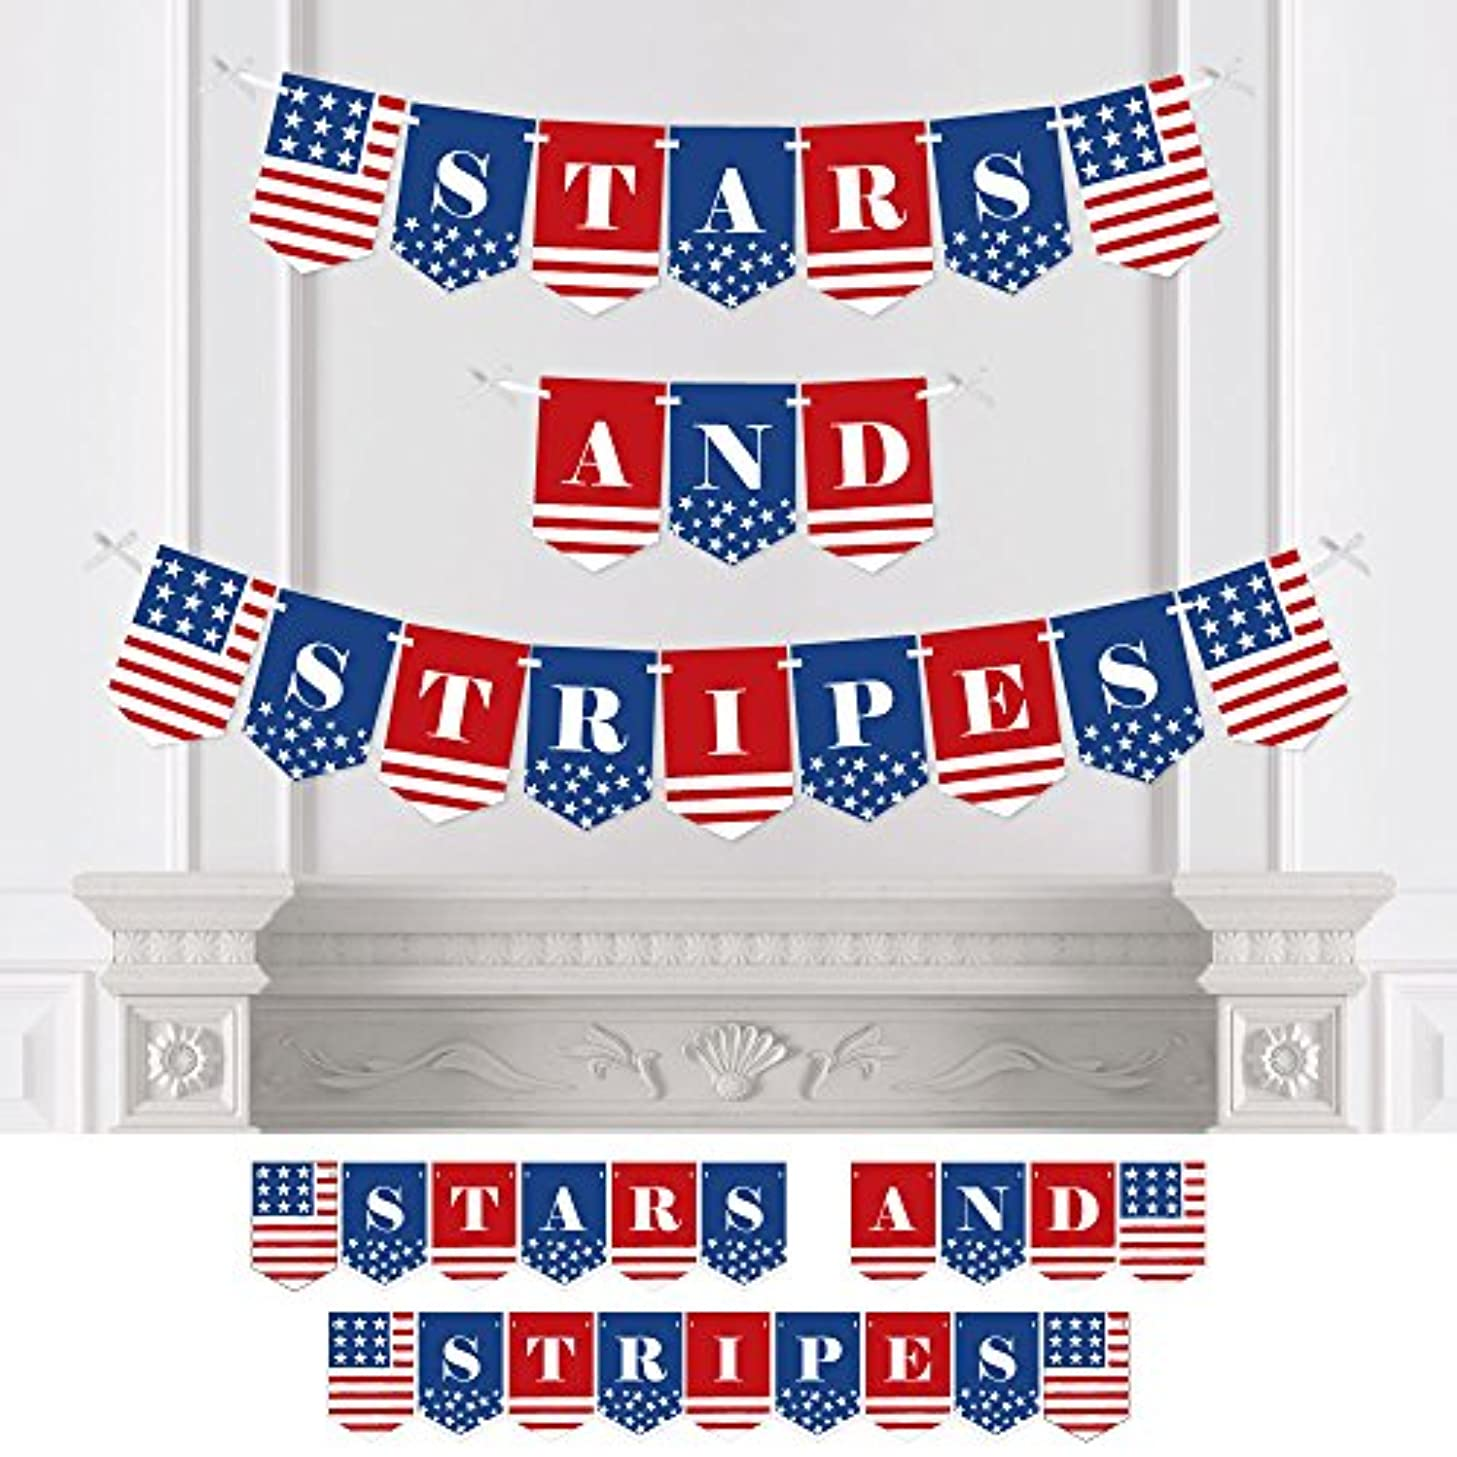 Stars & Stripes - 4th of July USA Patriotic Independence Day Party Bunting Banner - Party Decorations